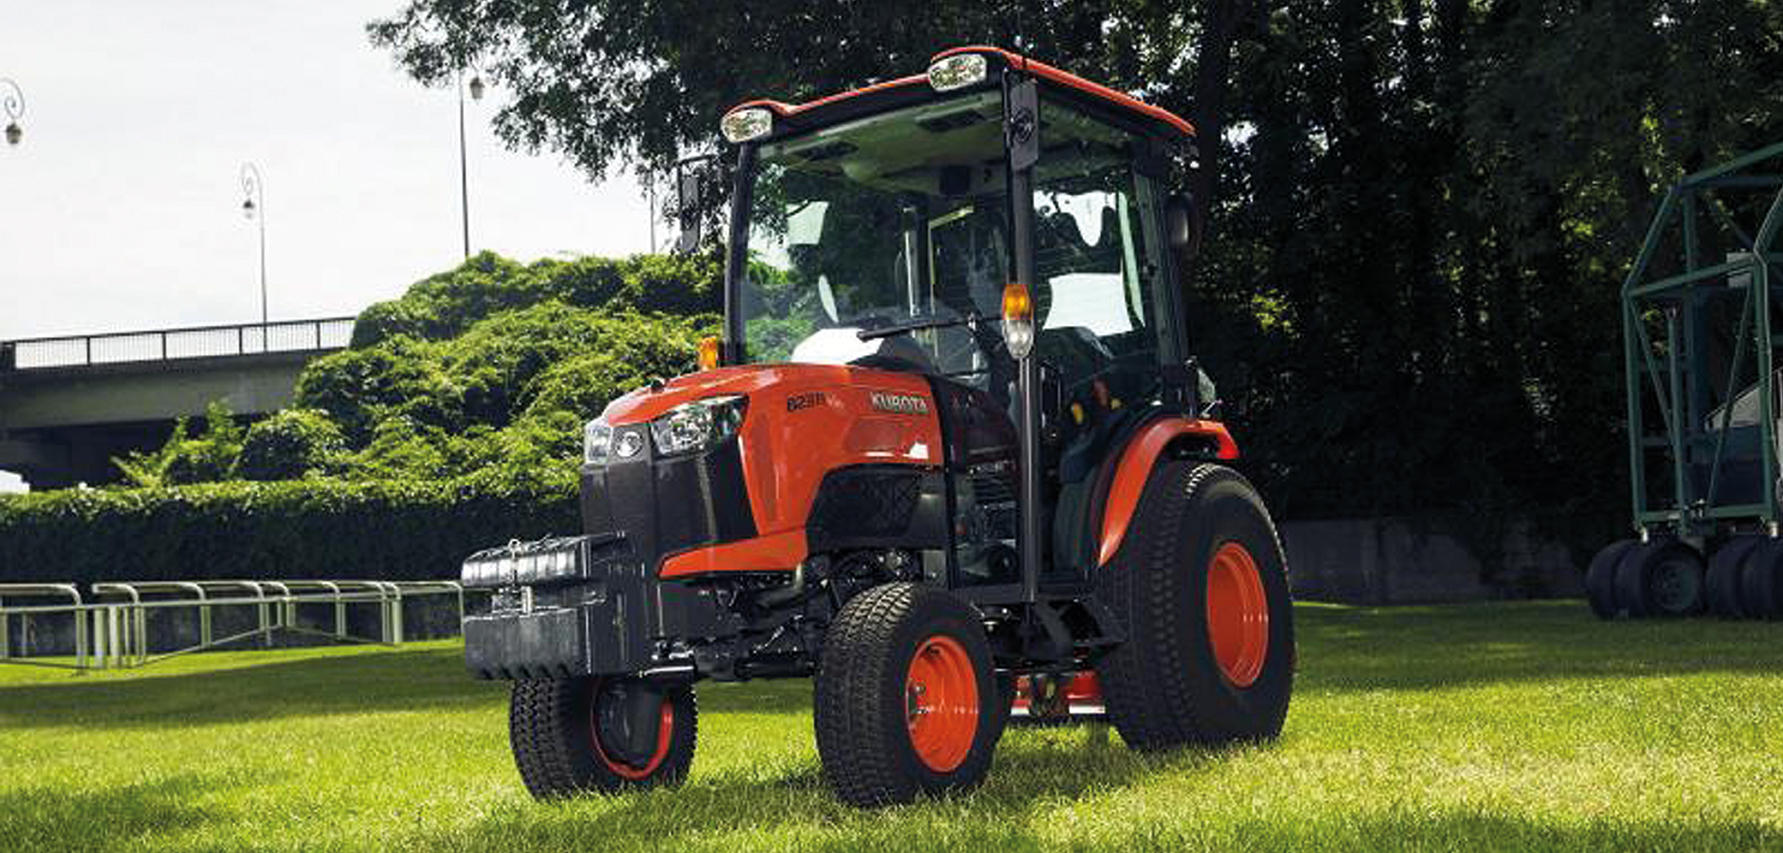 kubota shows its new b series compact tractors at lamma tillage and soils best practice crop. Black Bedroom Furniture Sets. Home Design Ideas